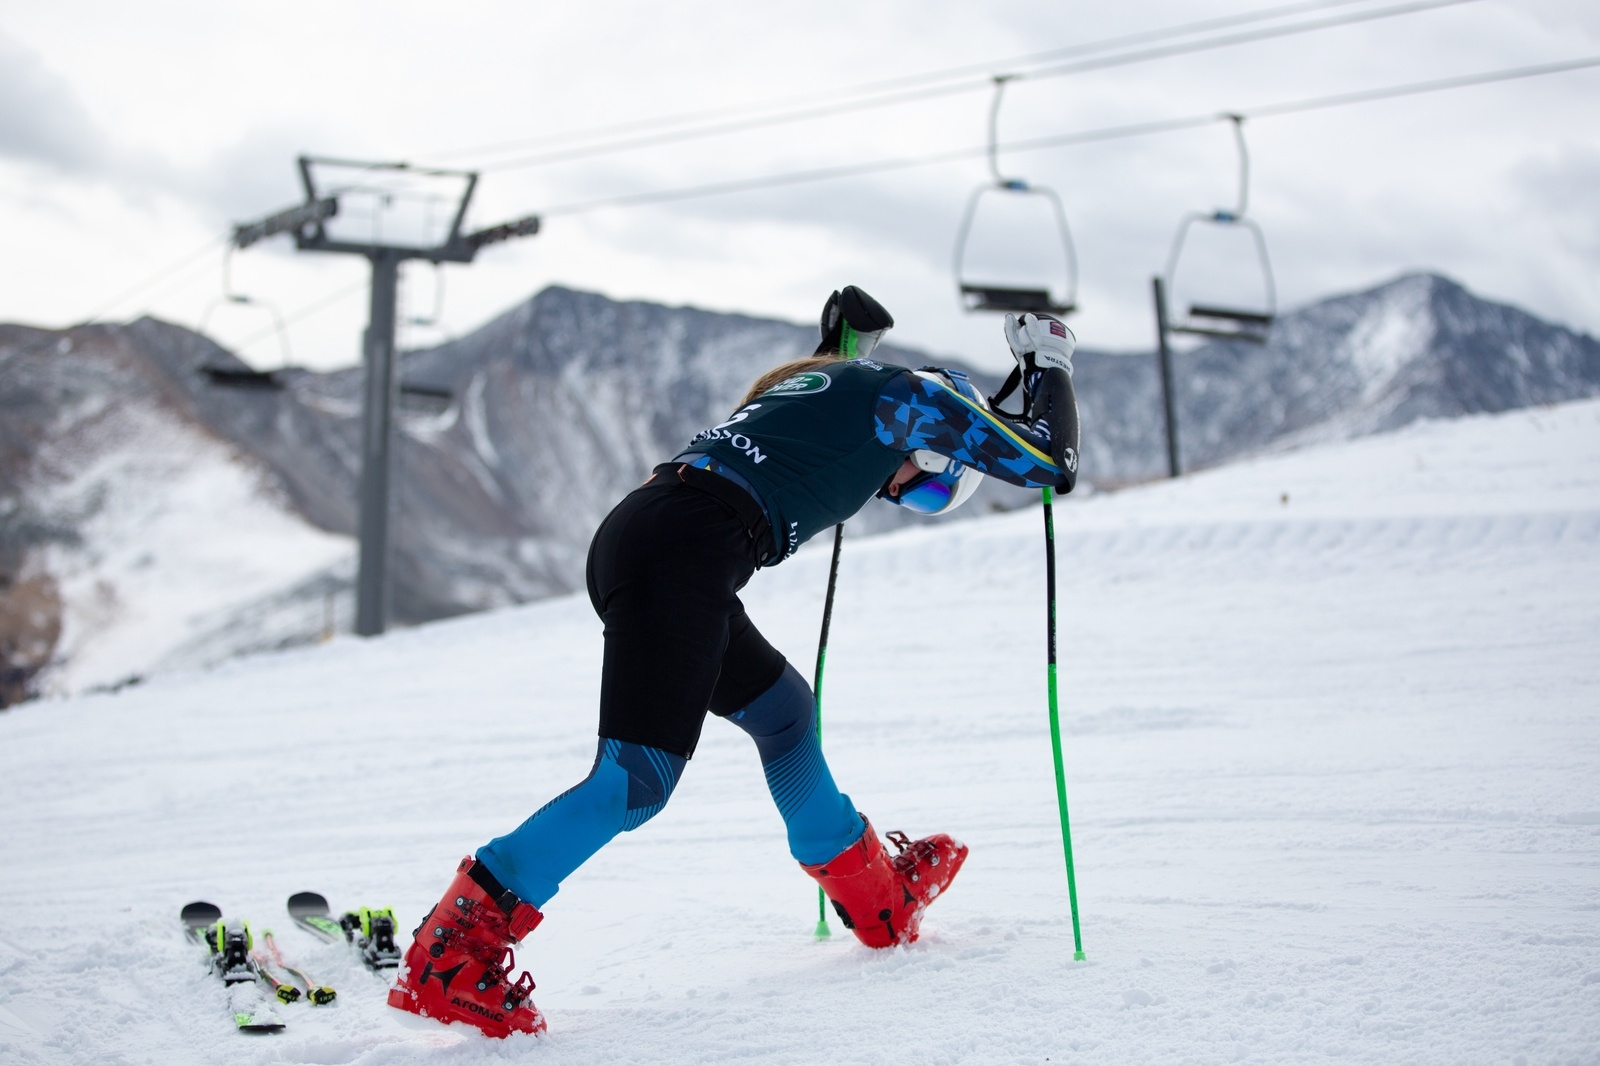 With the Tenmile-Mosquito Range in view in the distance, a U.S. skier stretches out during training at Copper Mountain Resort earlier this month.   Photo from U.S. Ski & Snowboard